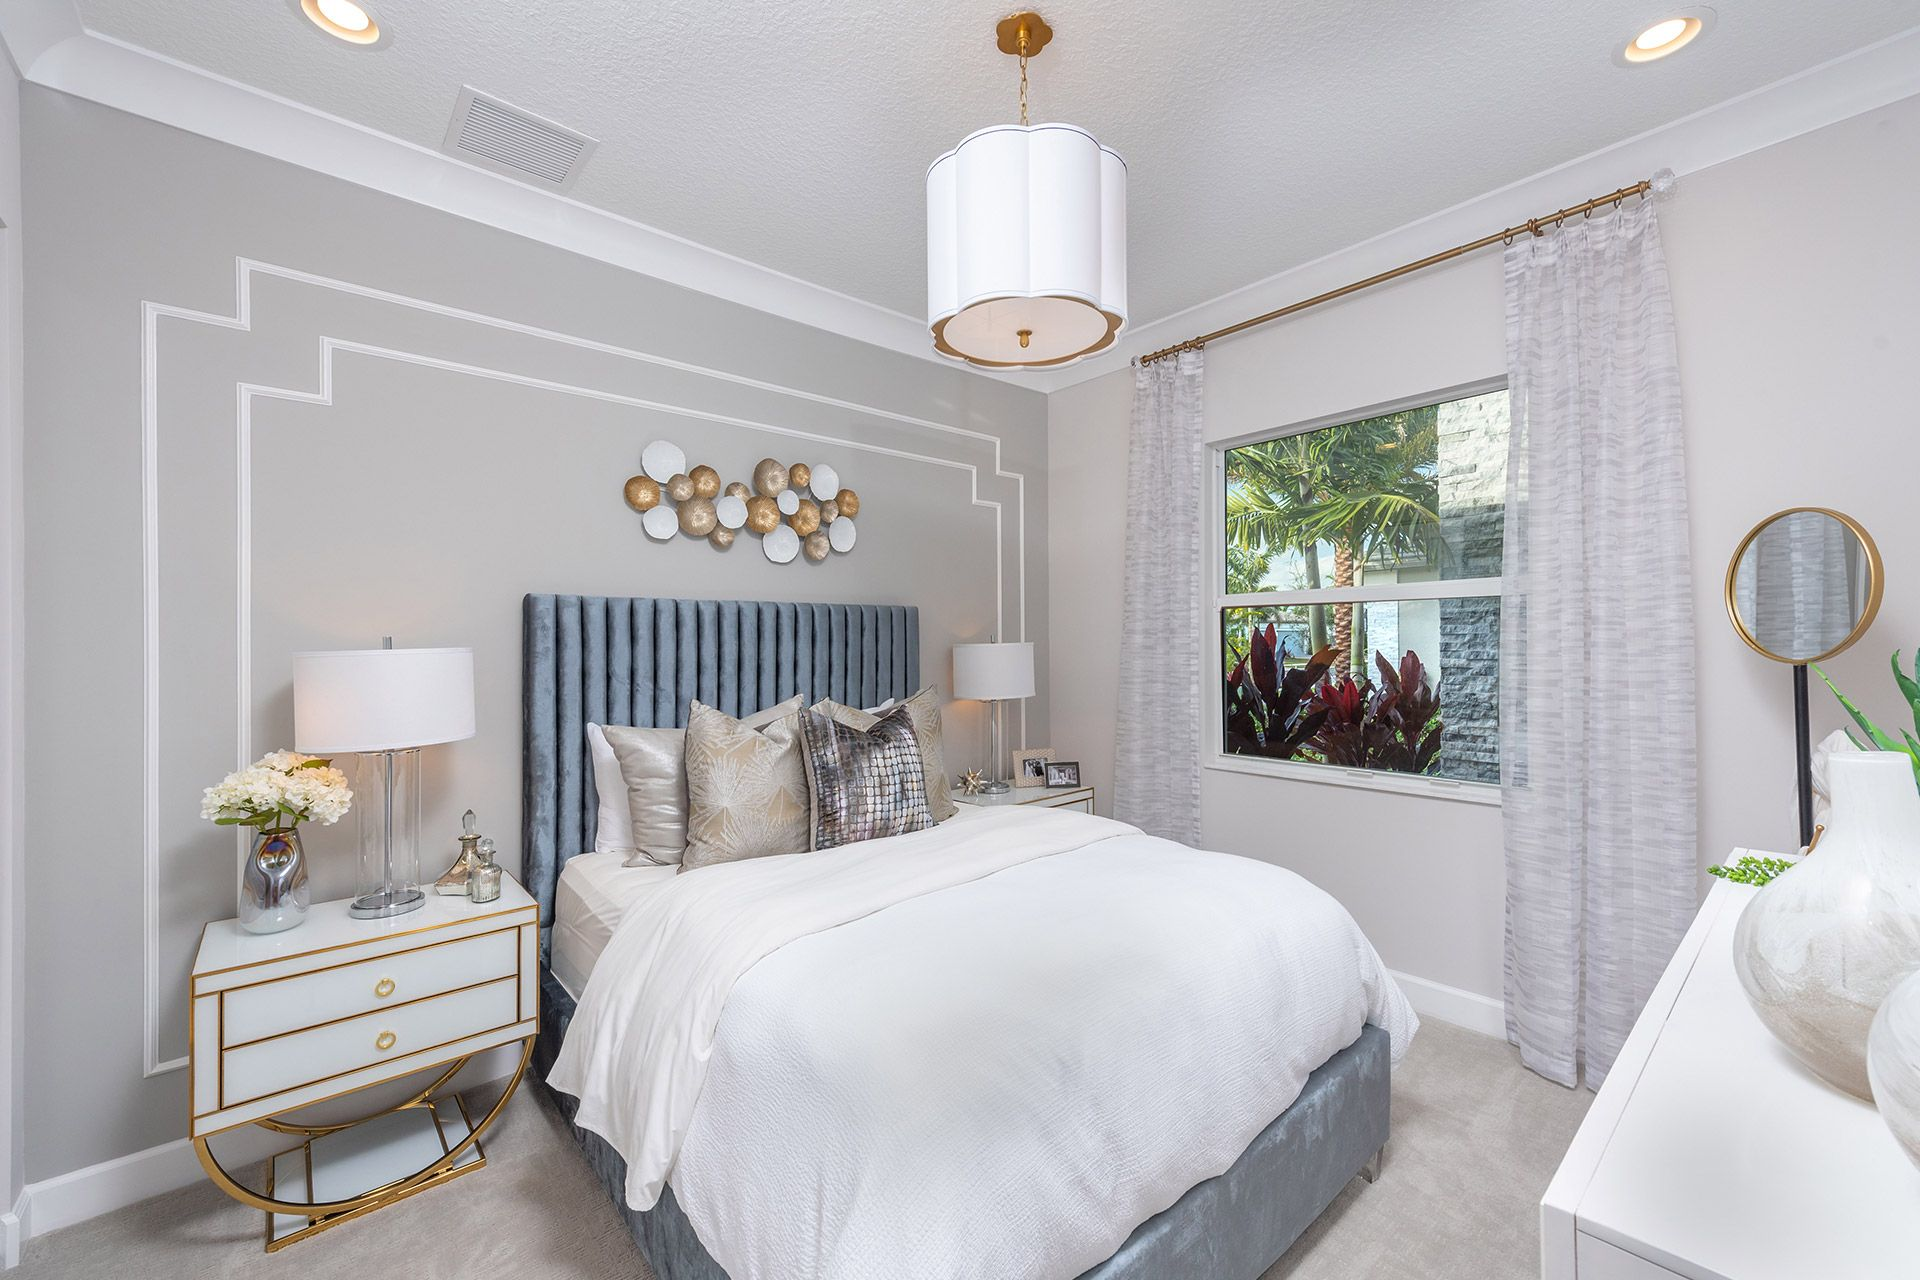 Bedroom featured in the Vienna By GL Homes in Palm Beach County, FL